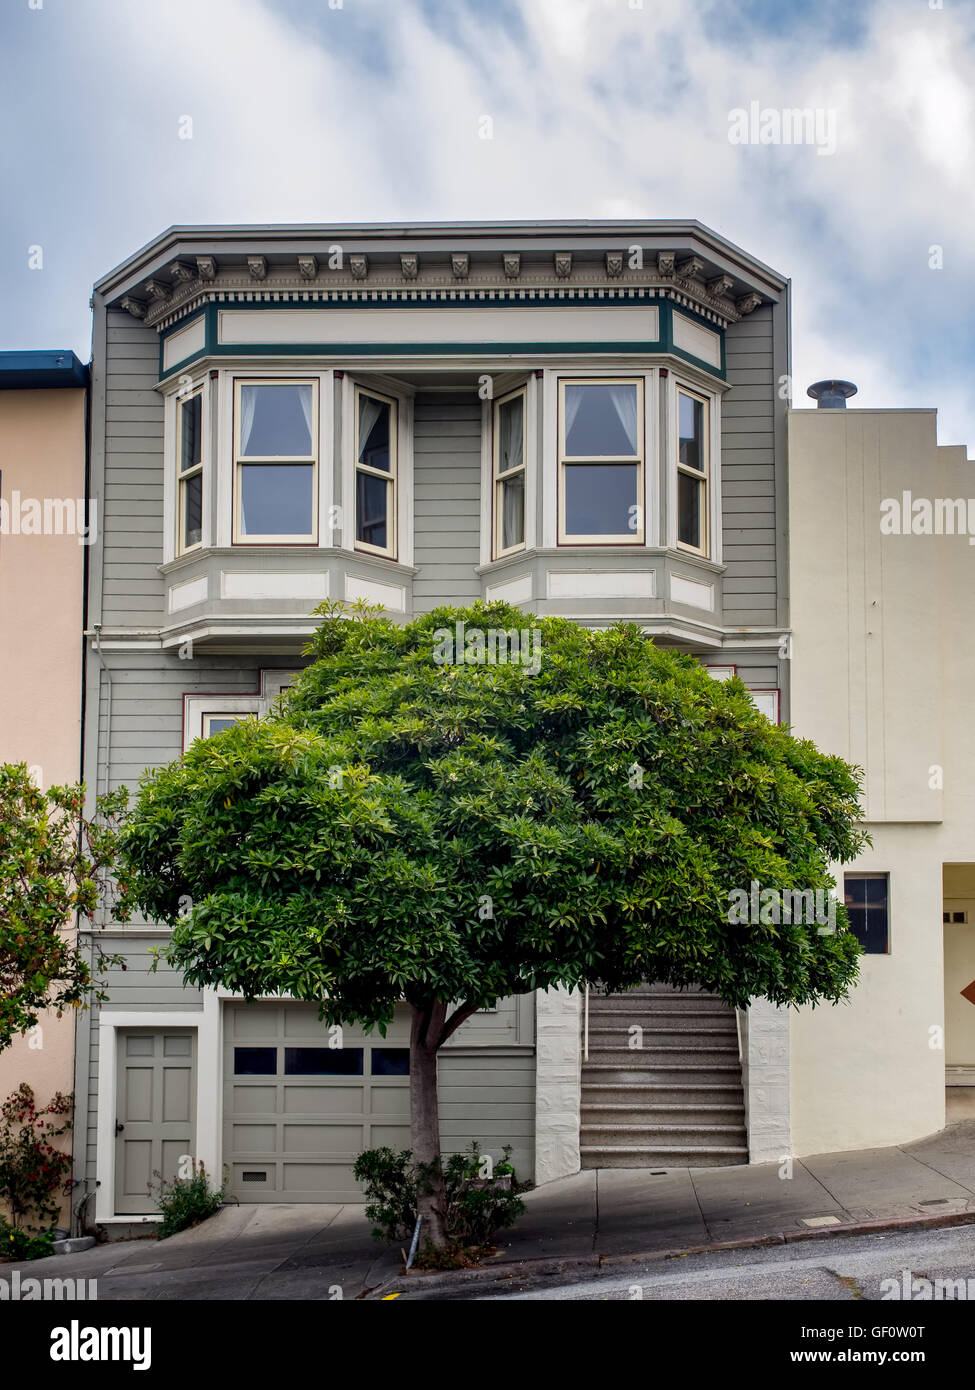 Painted Ladies victorian home in San Francisco, USA - Stock Image